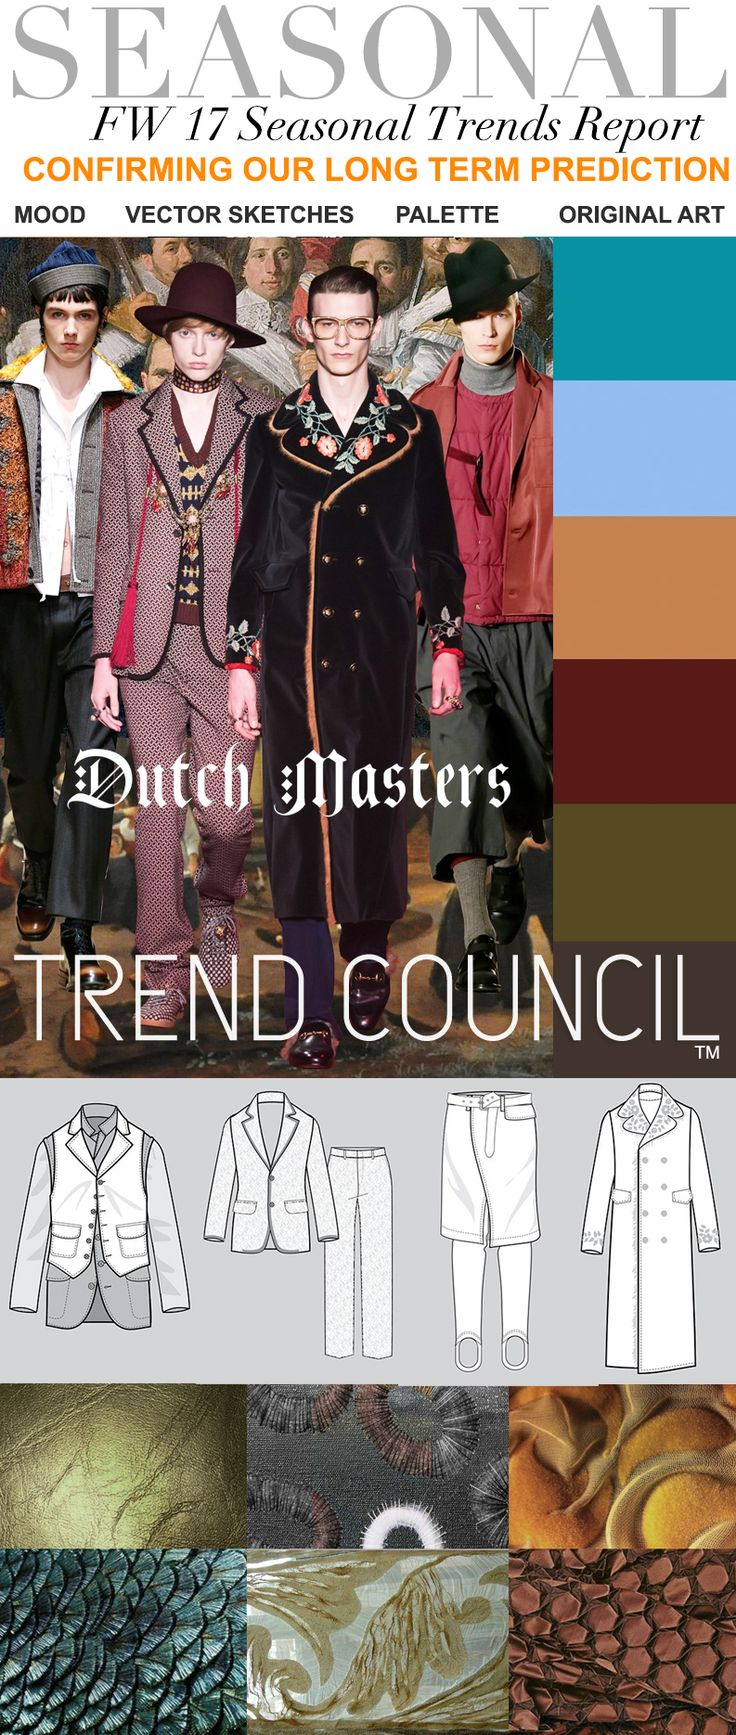 Best 25 trend council ideas on pinterest fashion for 2050 fashion predictions